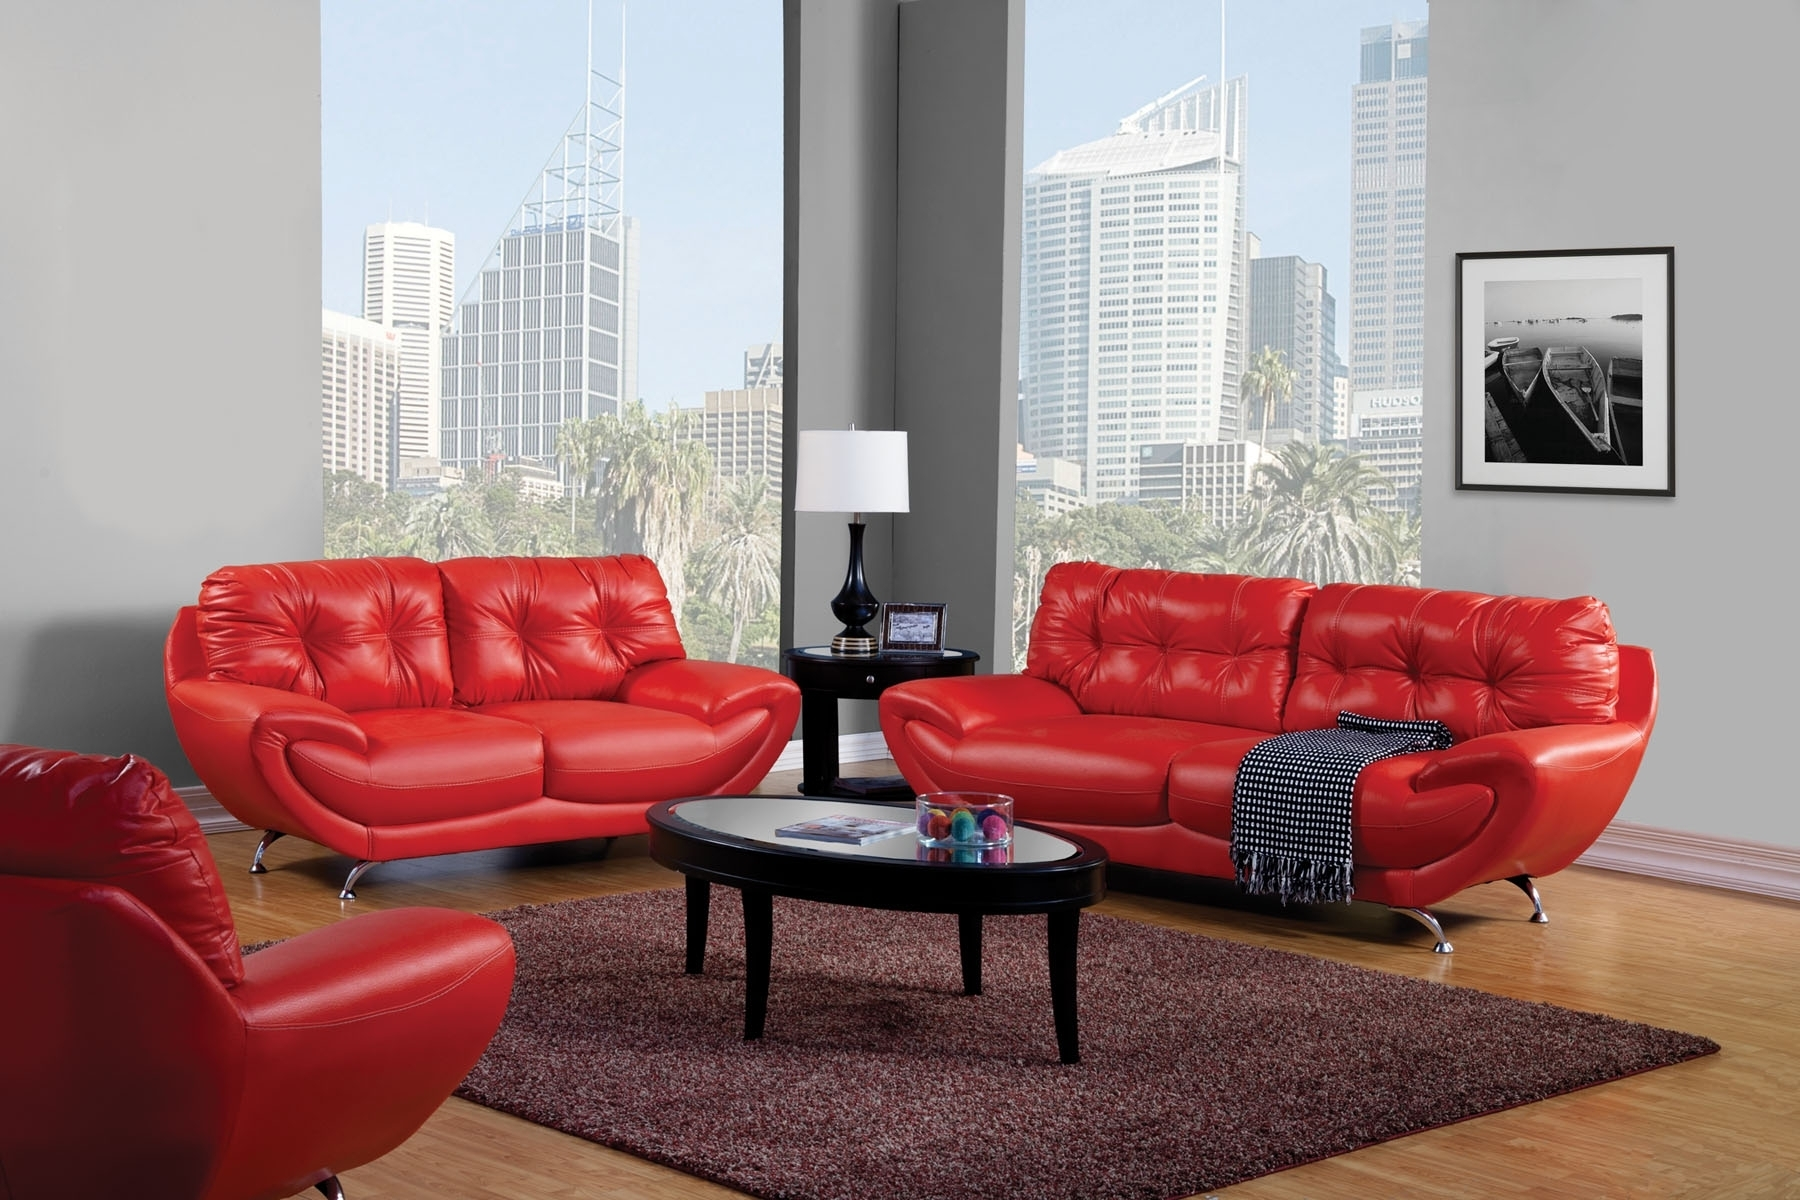 Red Leather Sofa Living Room Design • Living Room Design within Red Leather Couches For Living Room (Image 11 of 15)